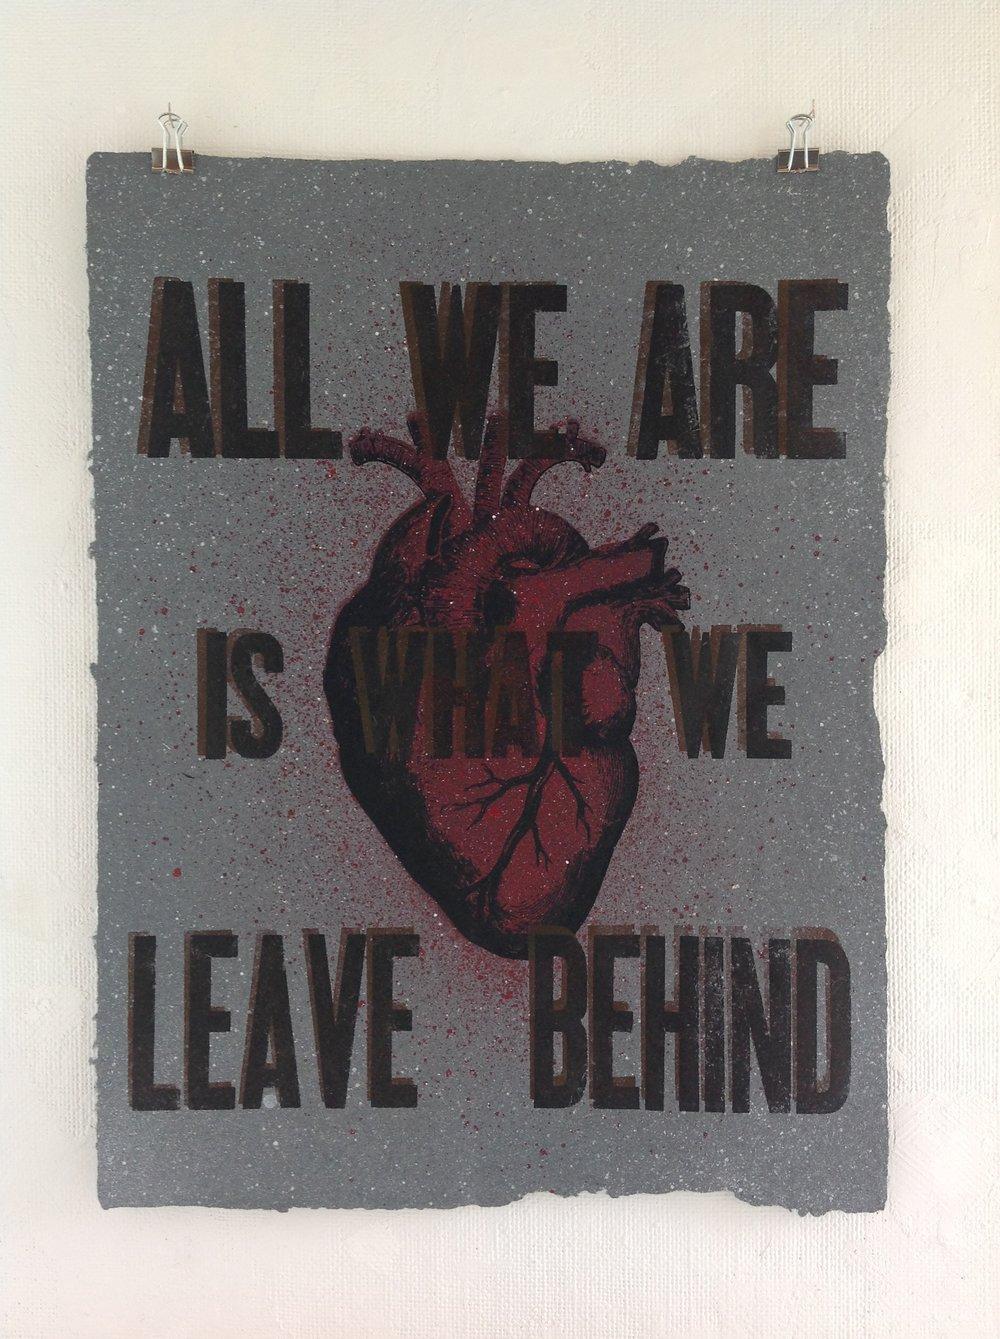 """All We are is What We Leave behind""    Eli Wright, 2017    Spray paint, Screen print, and Letterpress on handmade paper from military uniforms"